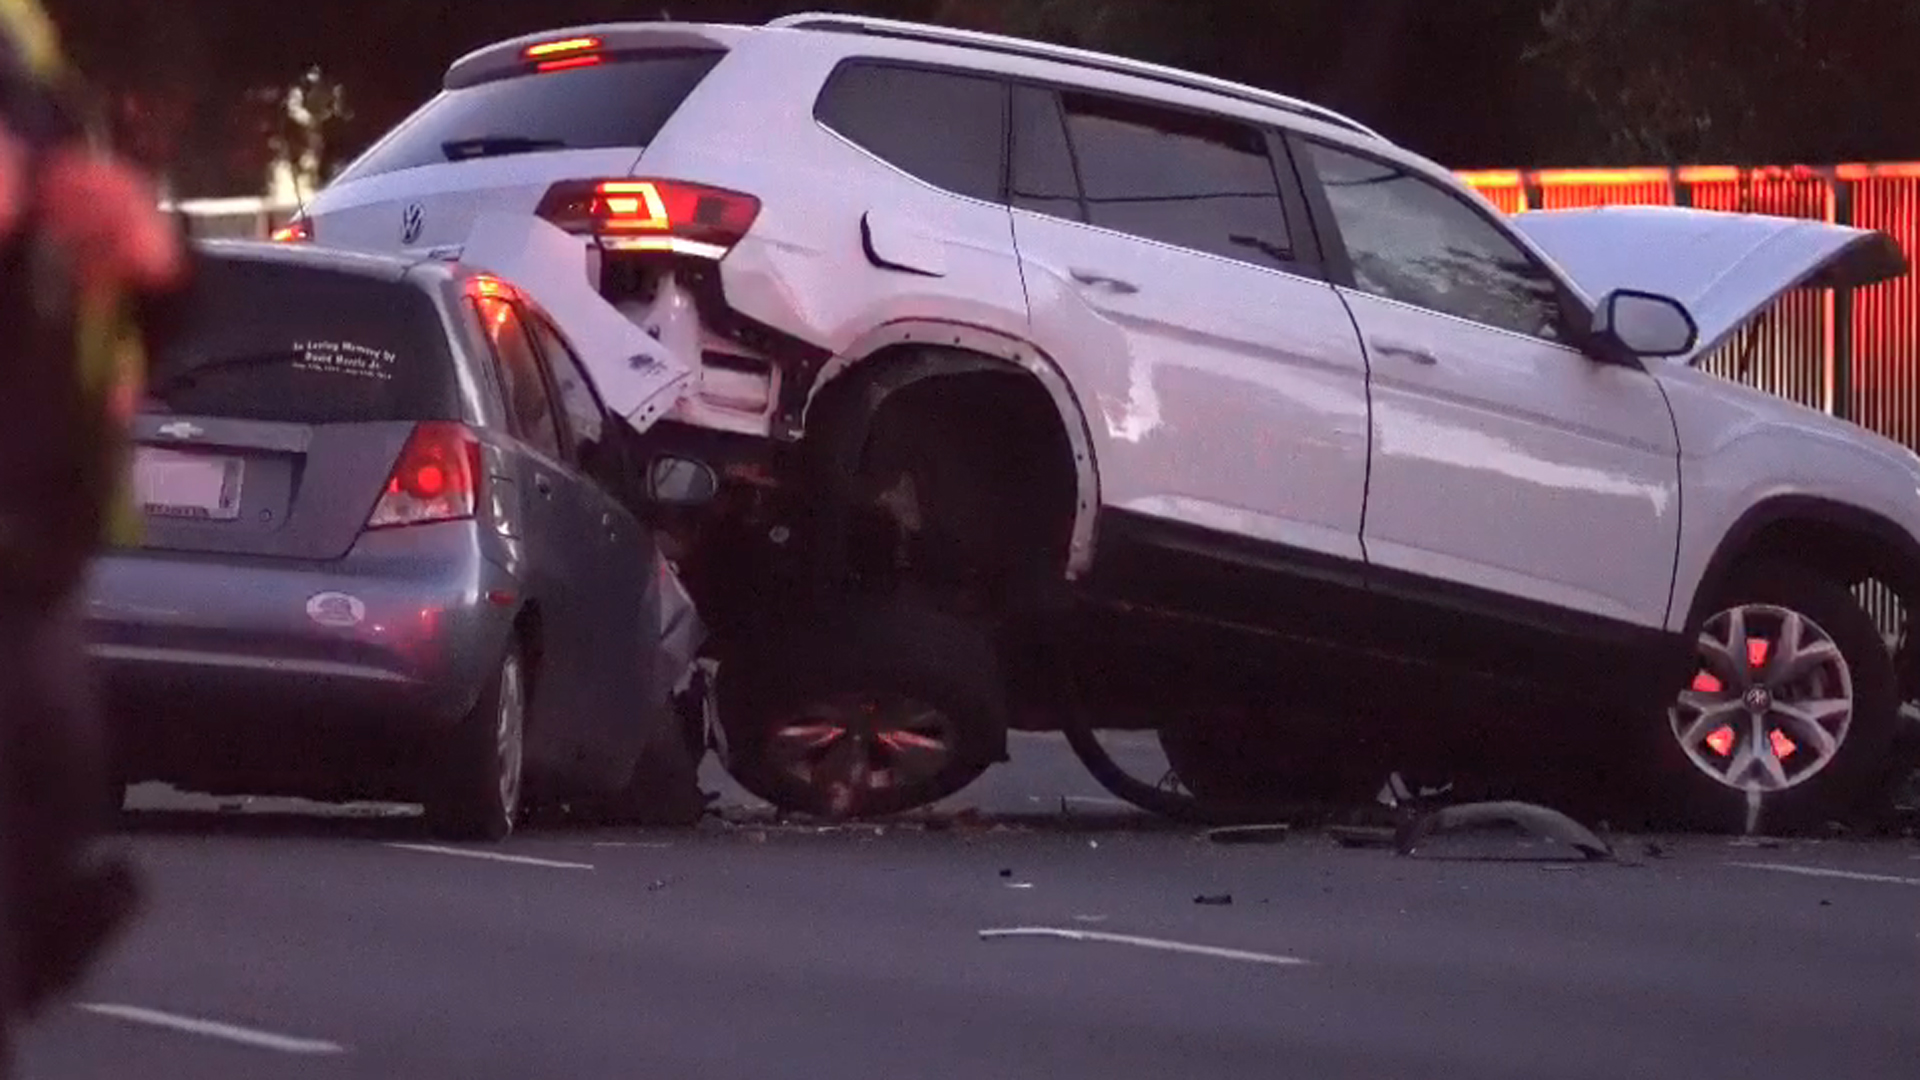 Two of three cars involved in a fatal crash in Westminster on Nov. 21, 2019. (Credit: OC HAWK NEWS)